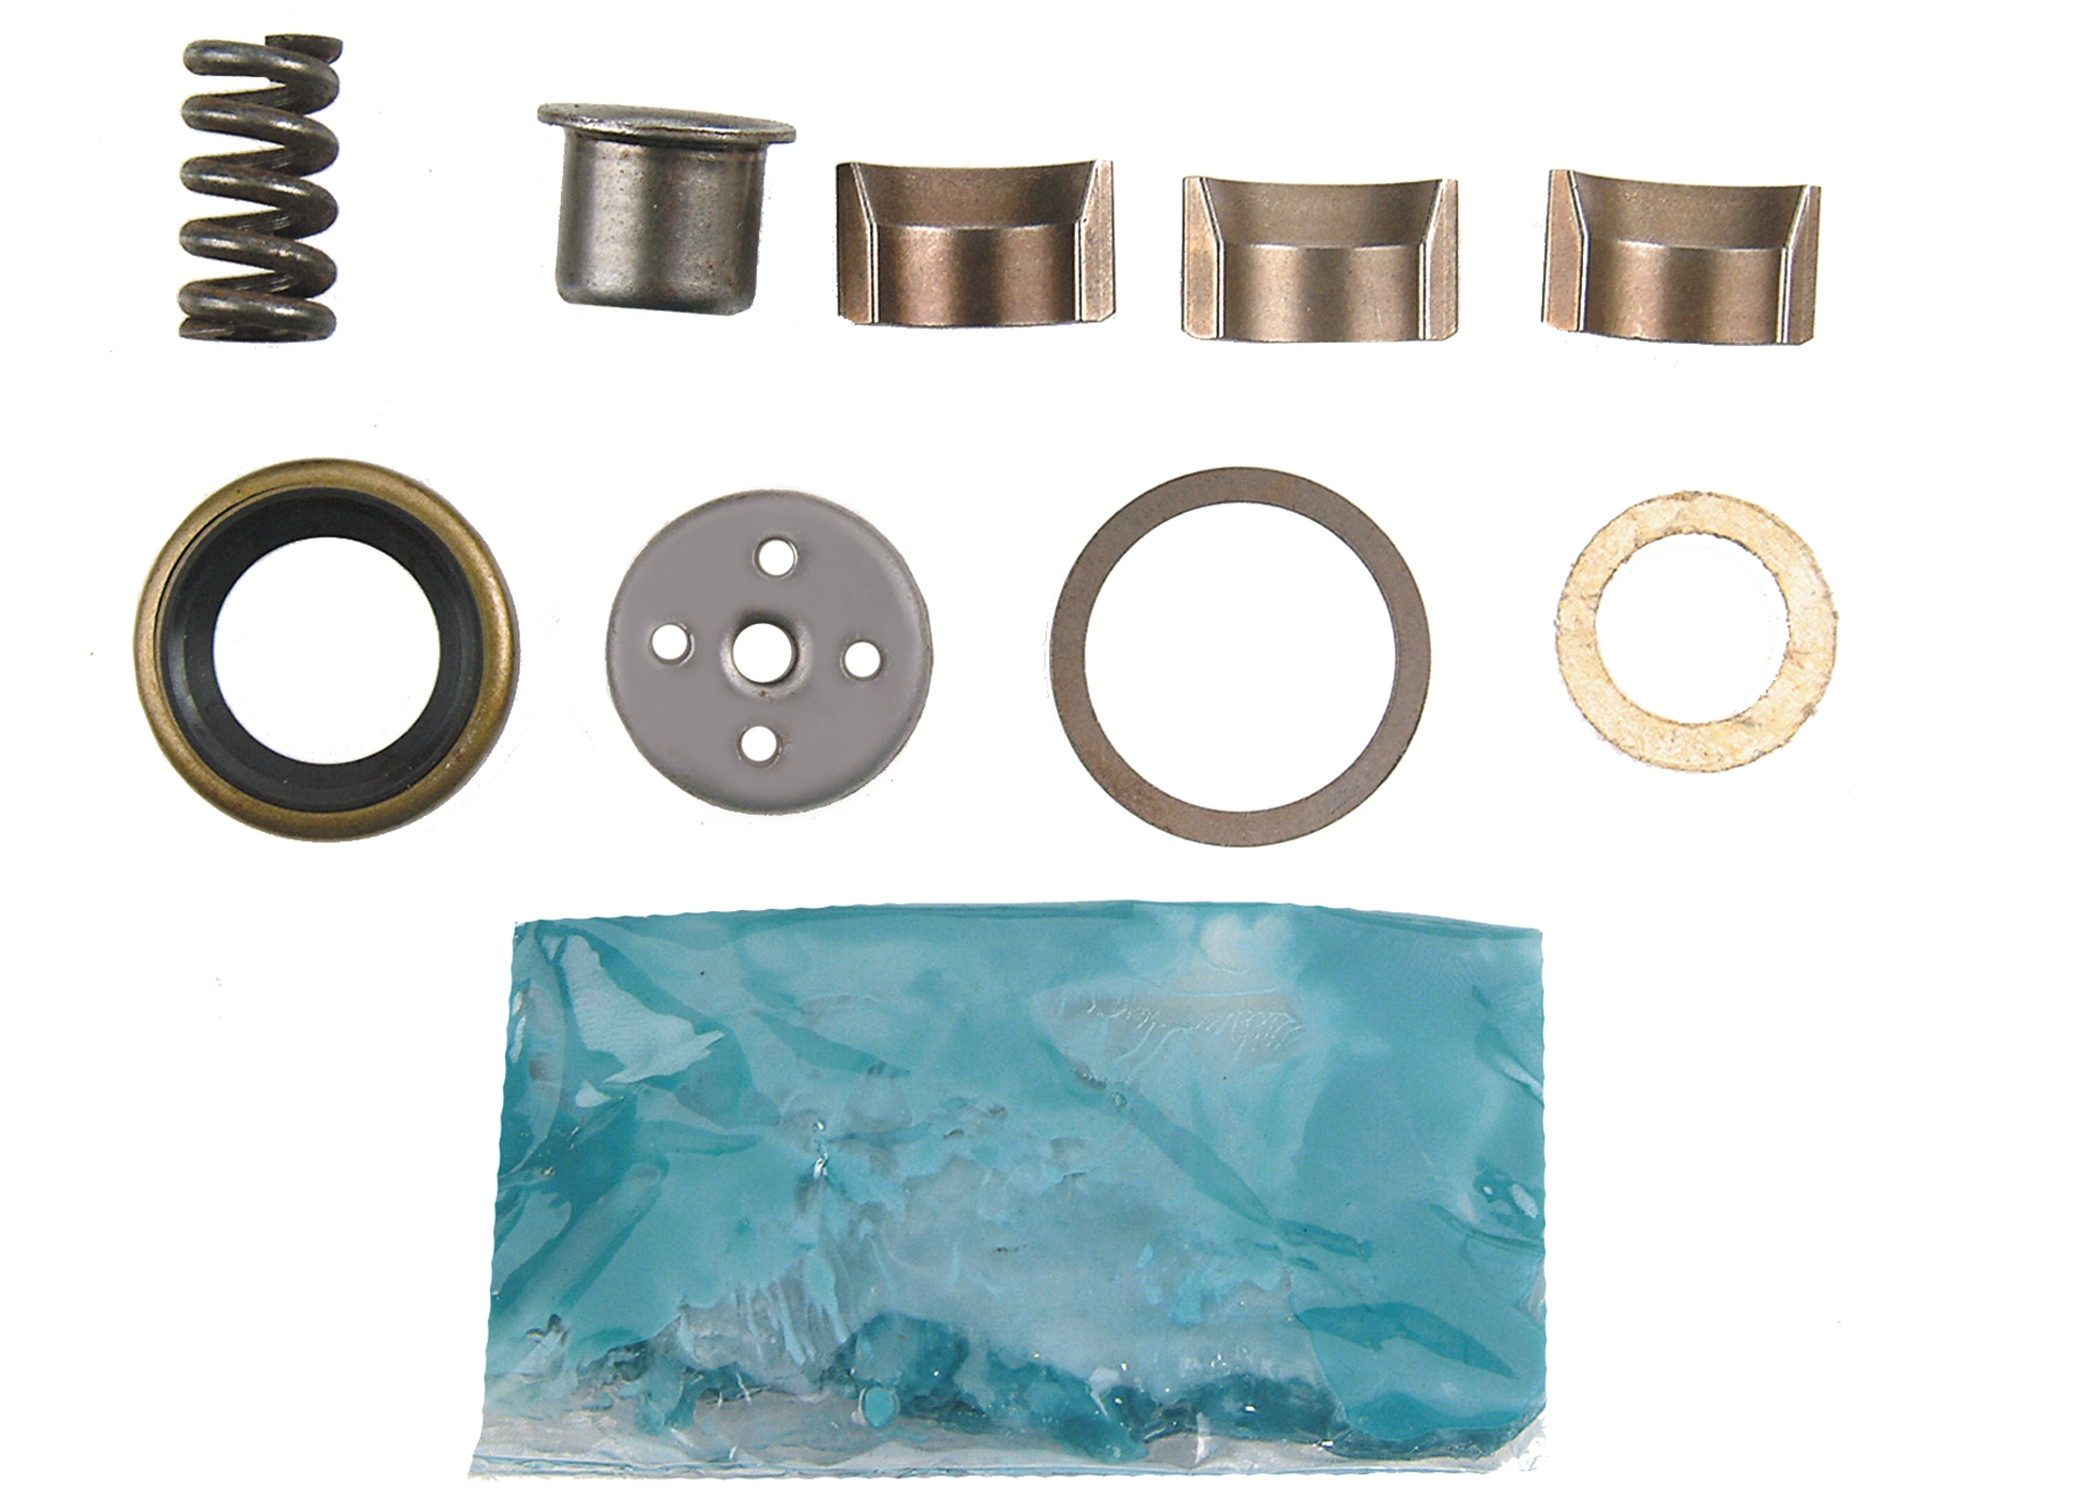 ACDELCO PROFESSIONAL - Propshaft Joint Ball Seat Kit - DCC 45U0751